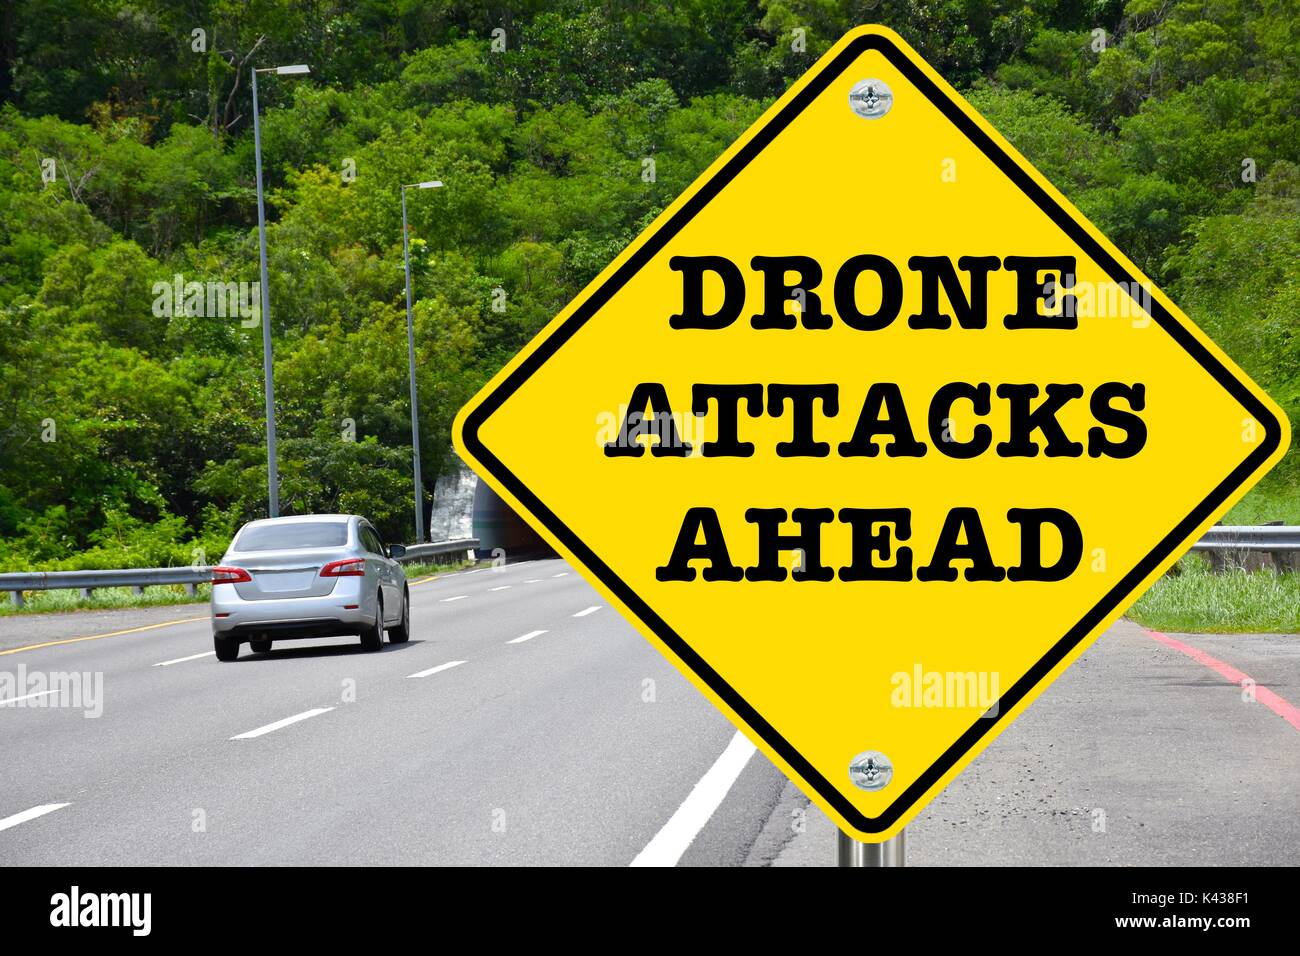 Drone attacks ahead, yellow warning street sign - Stock Image